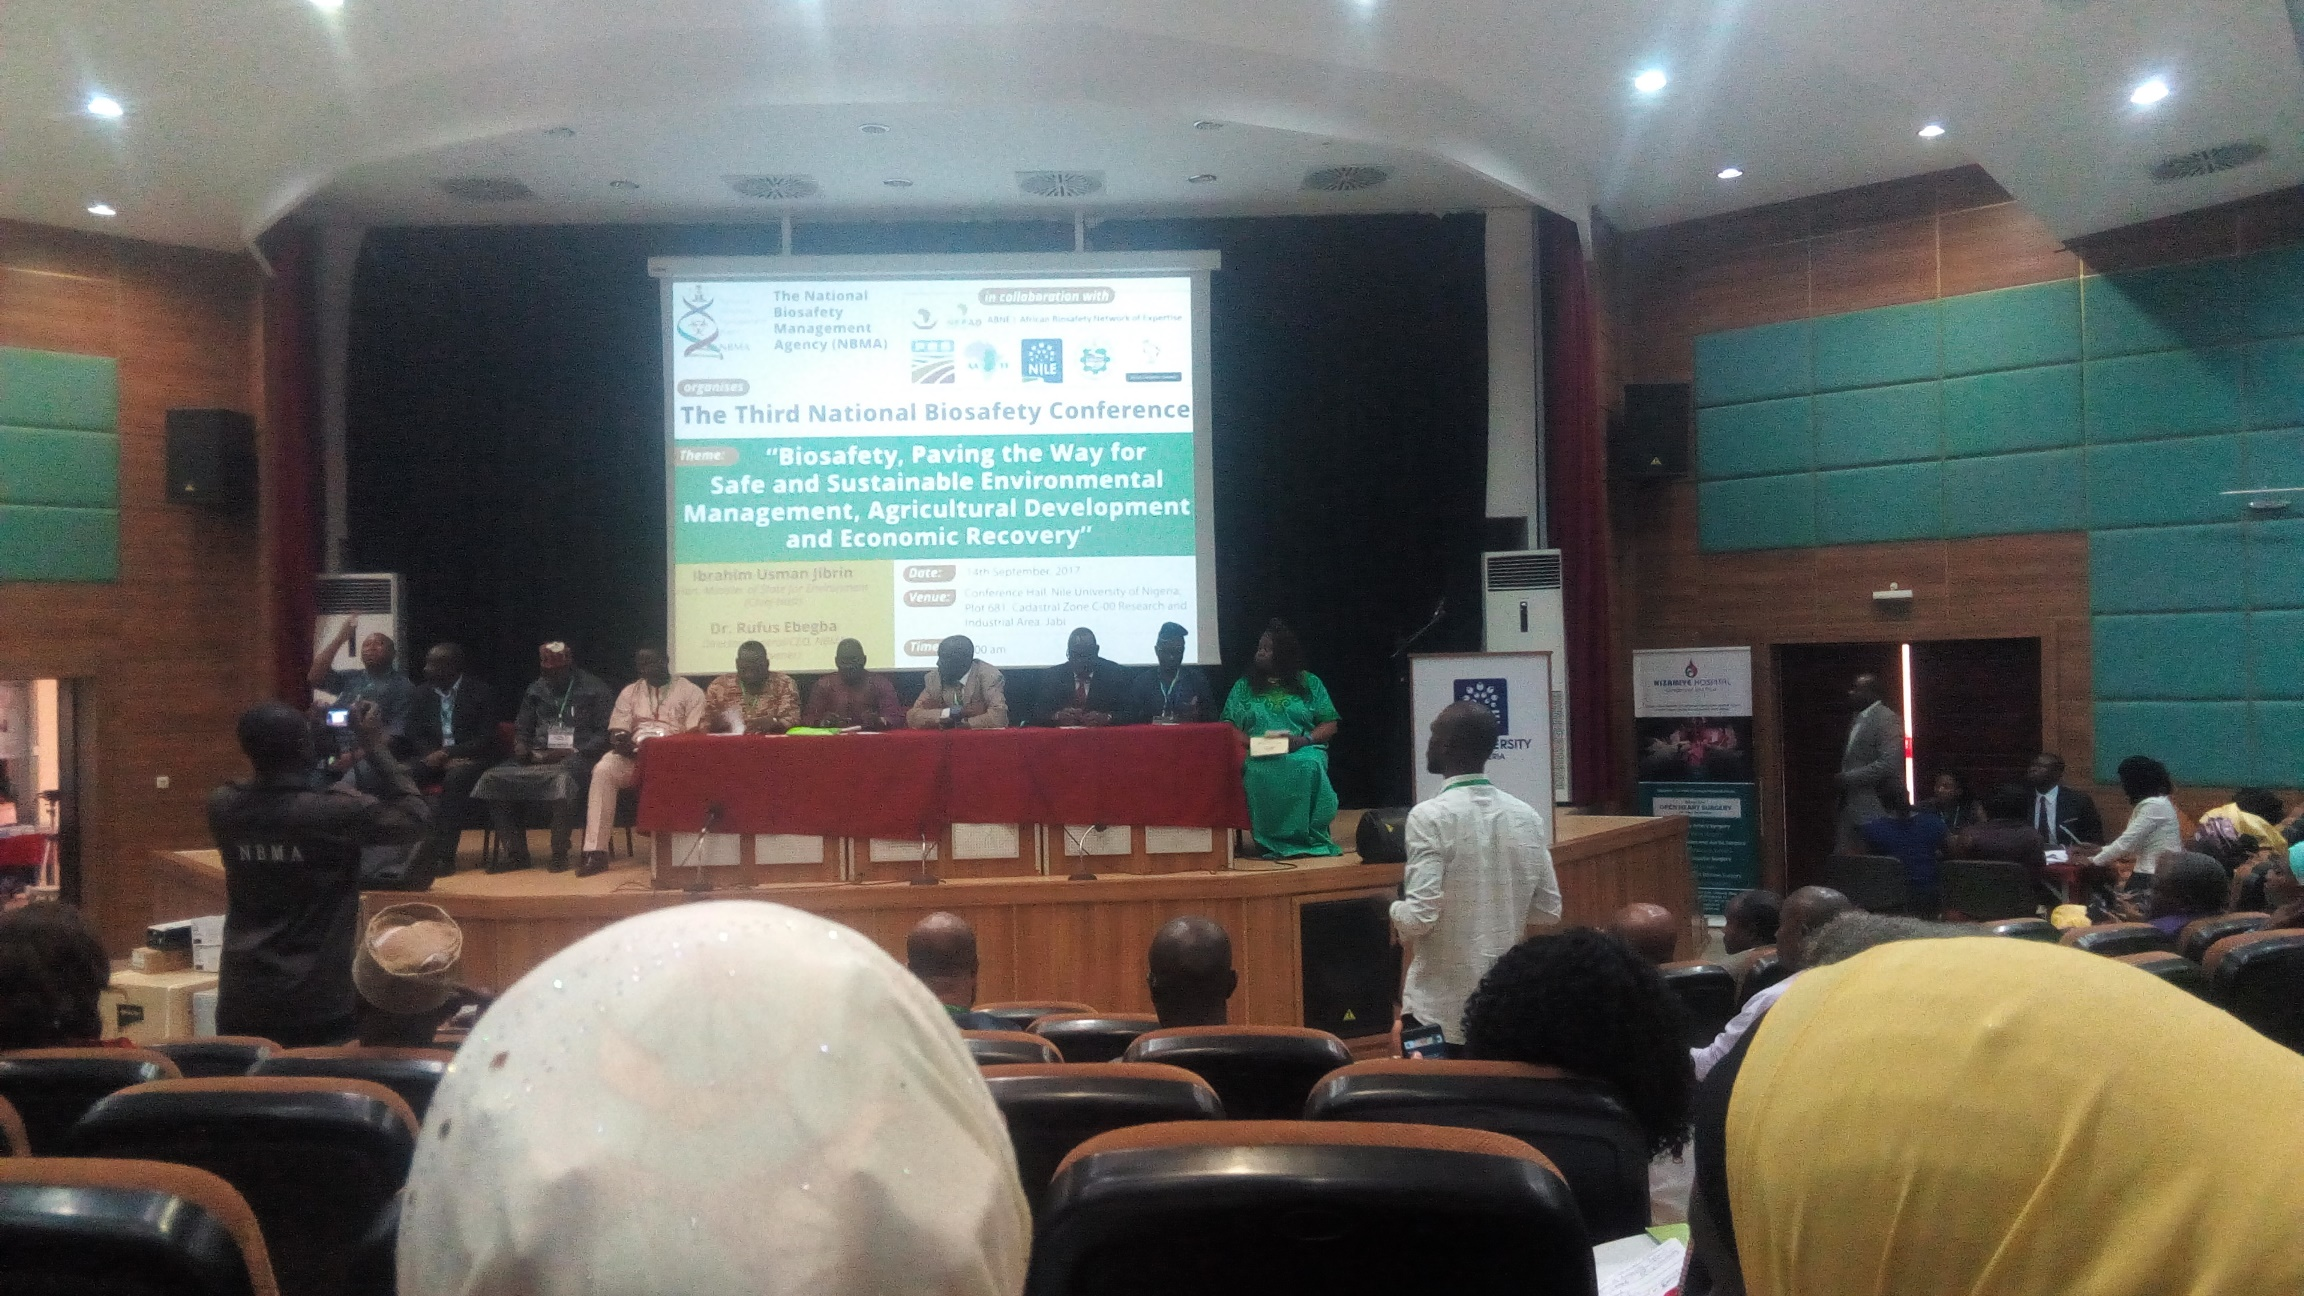 The conference panelists: Including Dr Rufus Ebegba (DG NBMA) , Prof Bamidele Solomon (for   NABDA DG) Prof. Diran Makinde, Dr. Godwin Uyi Ojo (environmental right action/friends of the earth nigeria Alex Abut - Communications Officers PBS/NBM and Edel-Quinn Ijeoma Agbaegbu (Executive President EWHC)